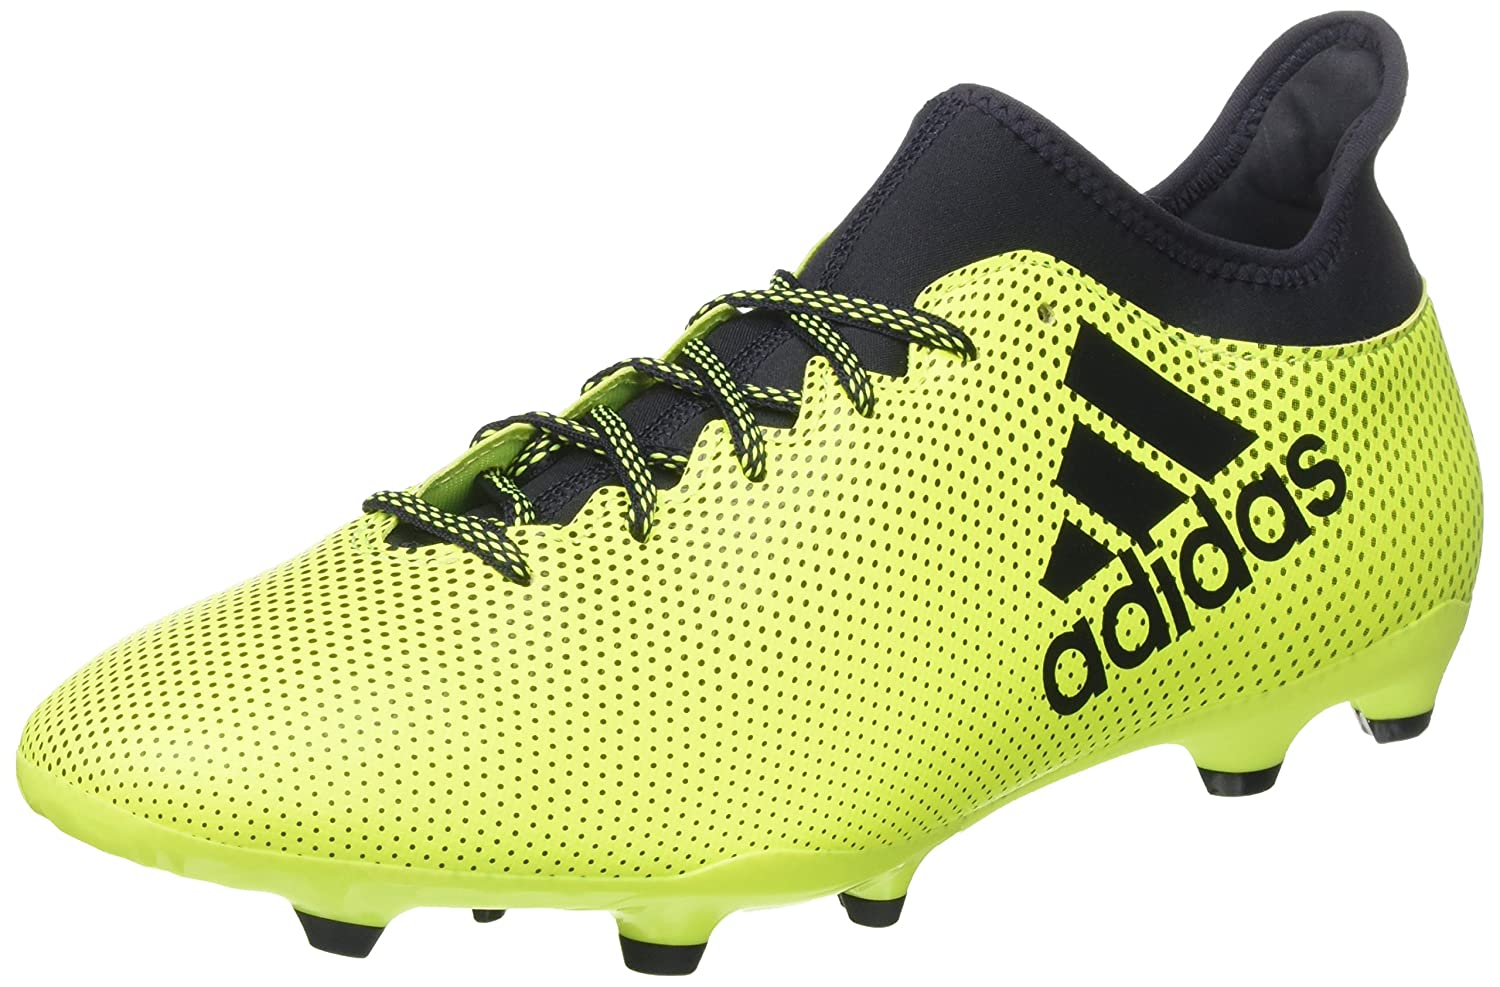 Homme 17 3 De X FgChaussures Adidas Football 80nmNw